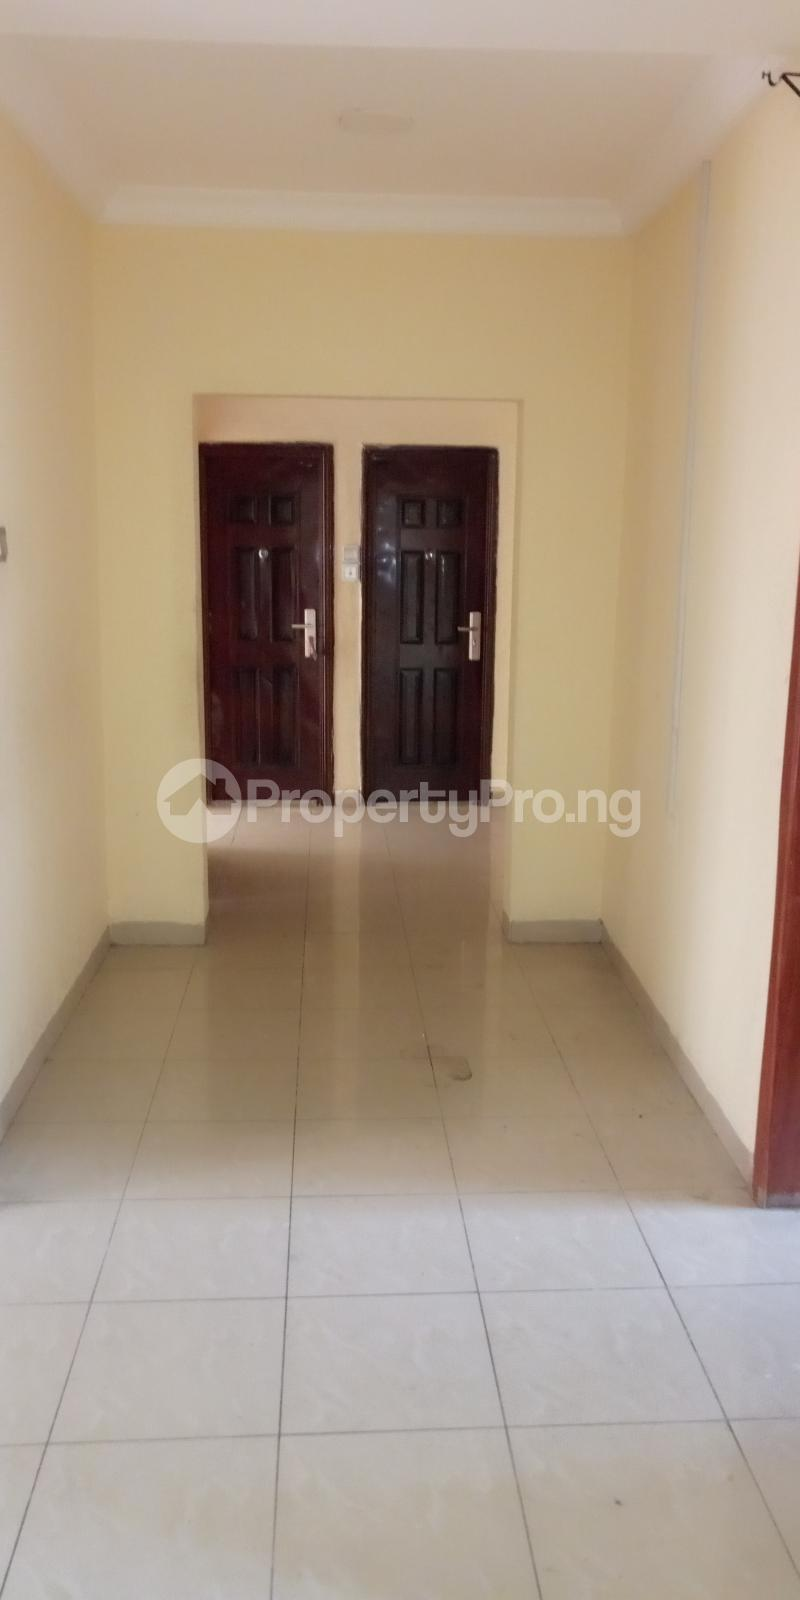 3 bedroom Flat / Apartment for rent Alagomeji Alagomeji Yaba Lagos - 7